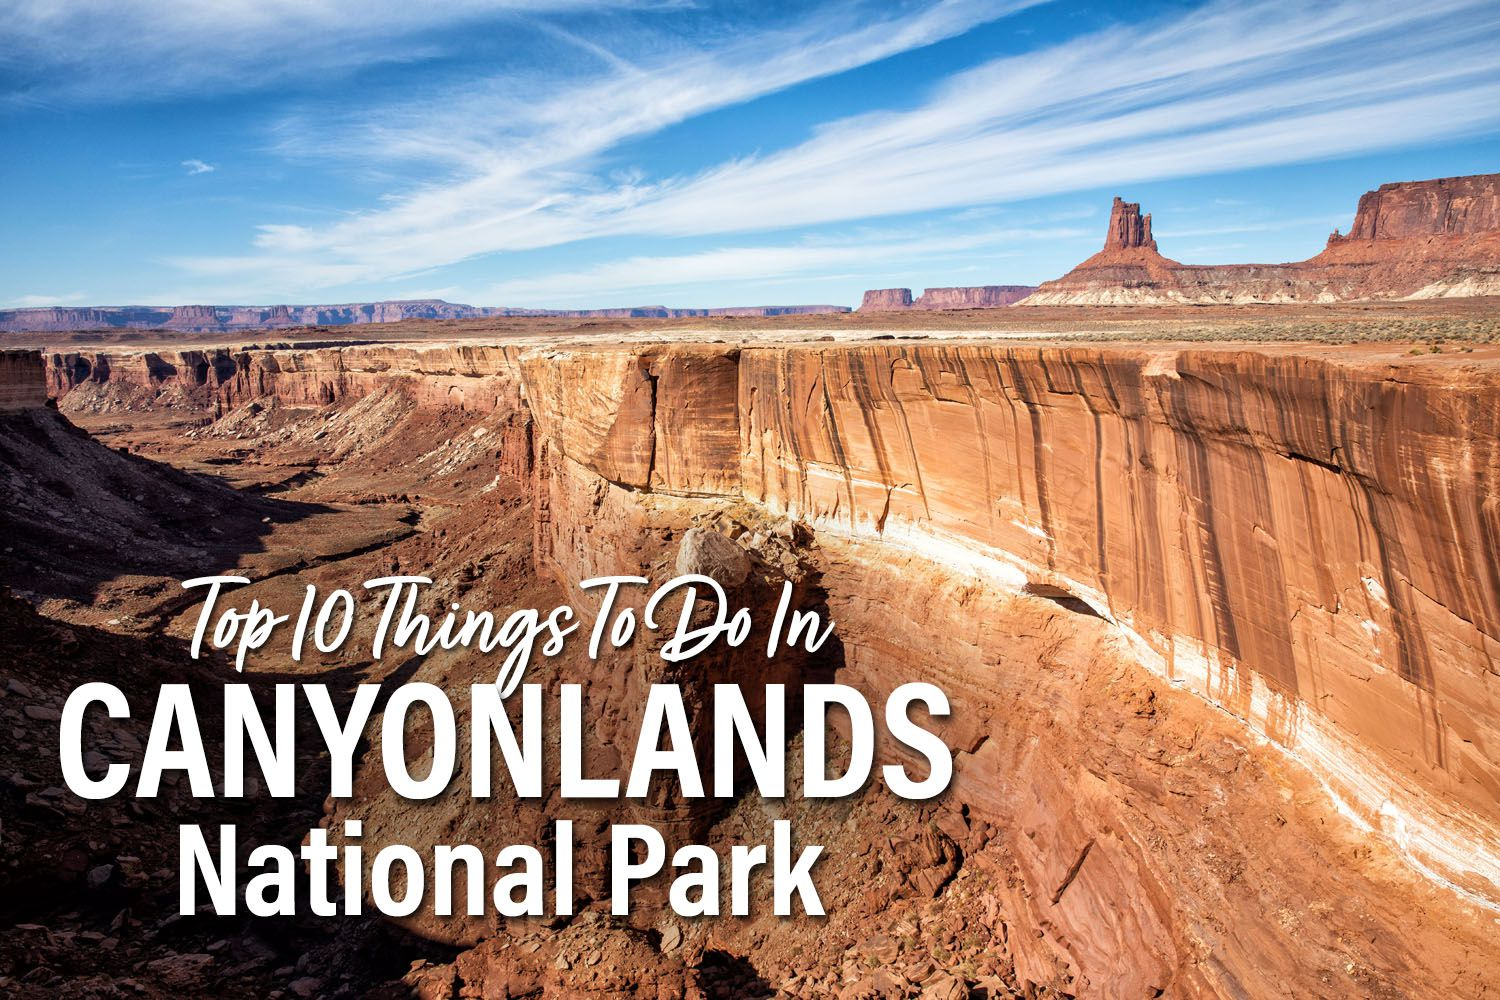 Canyonlands National Park To Do List